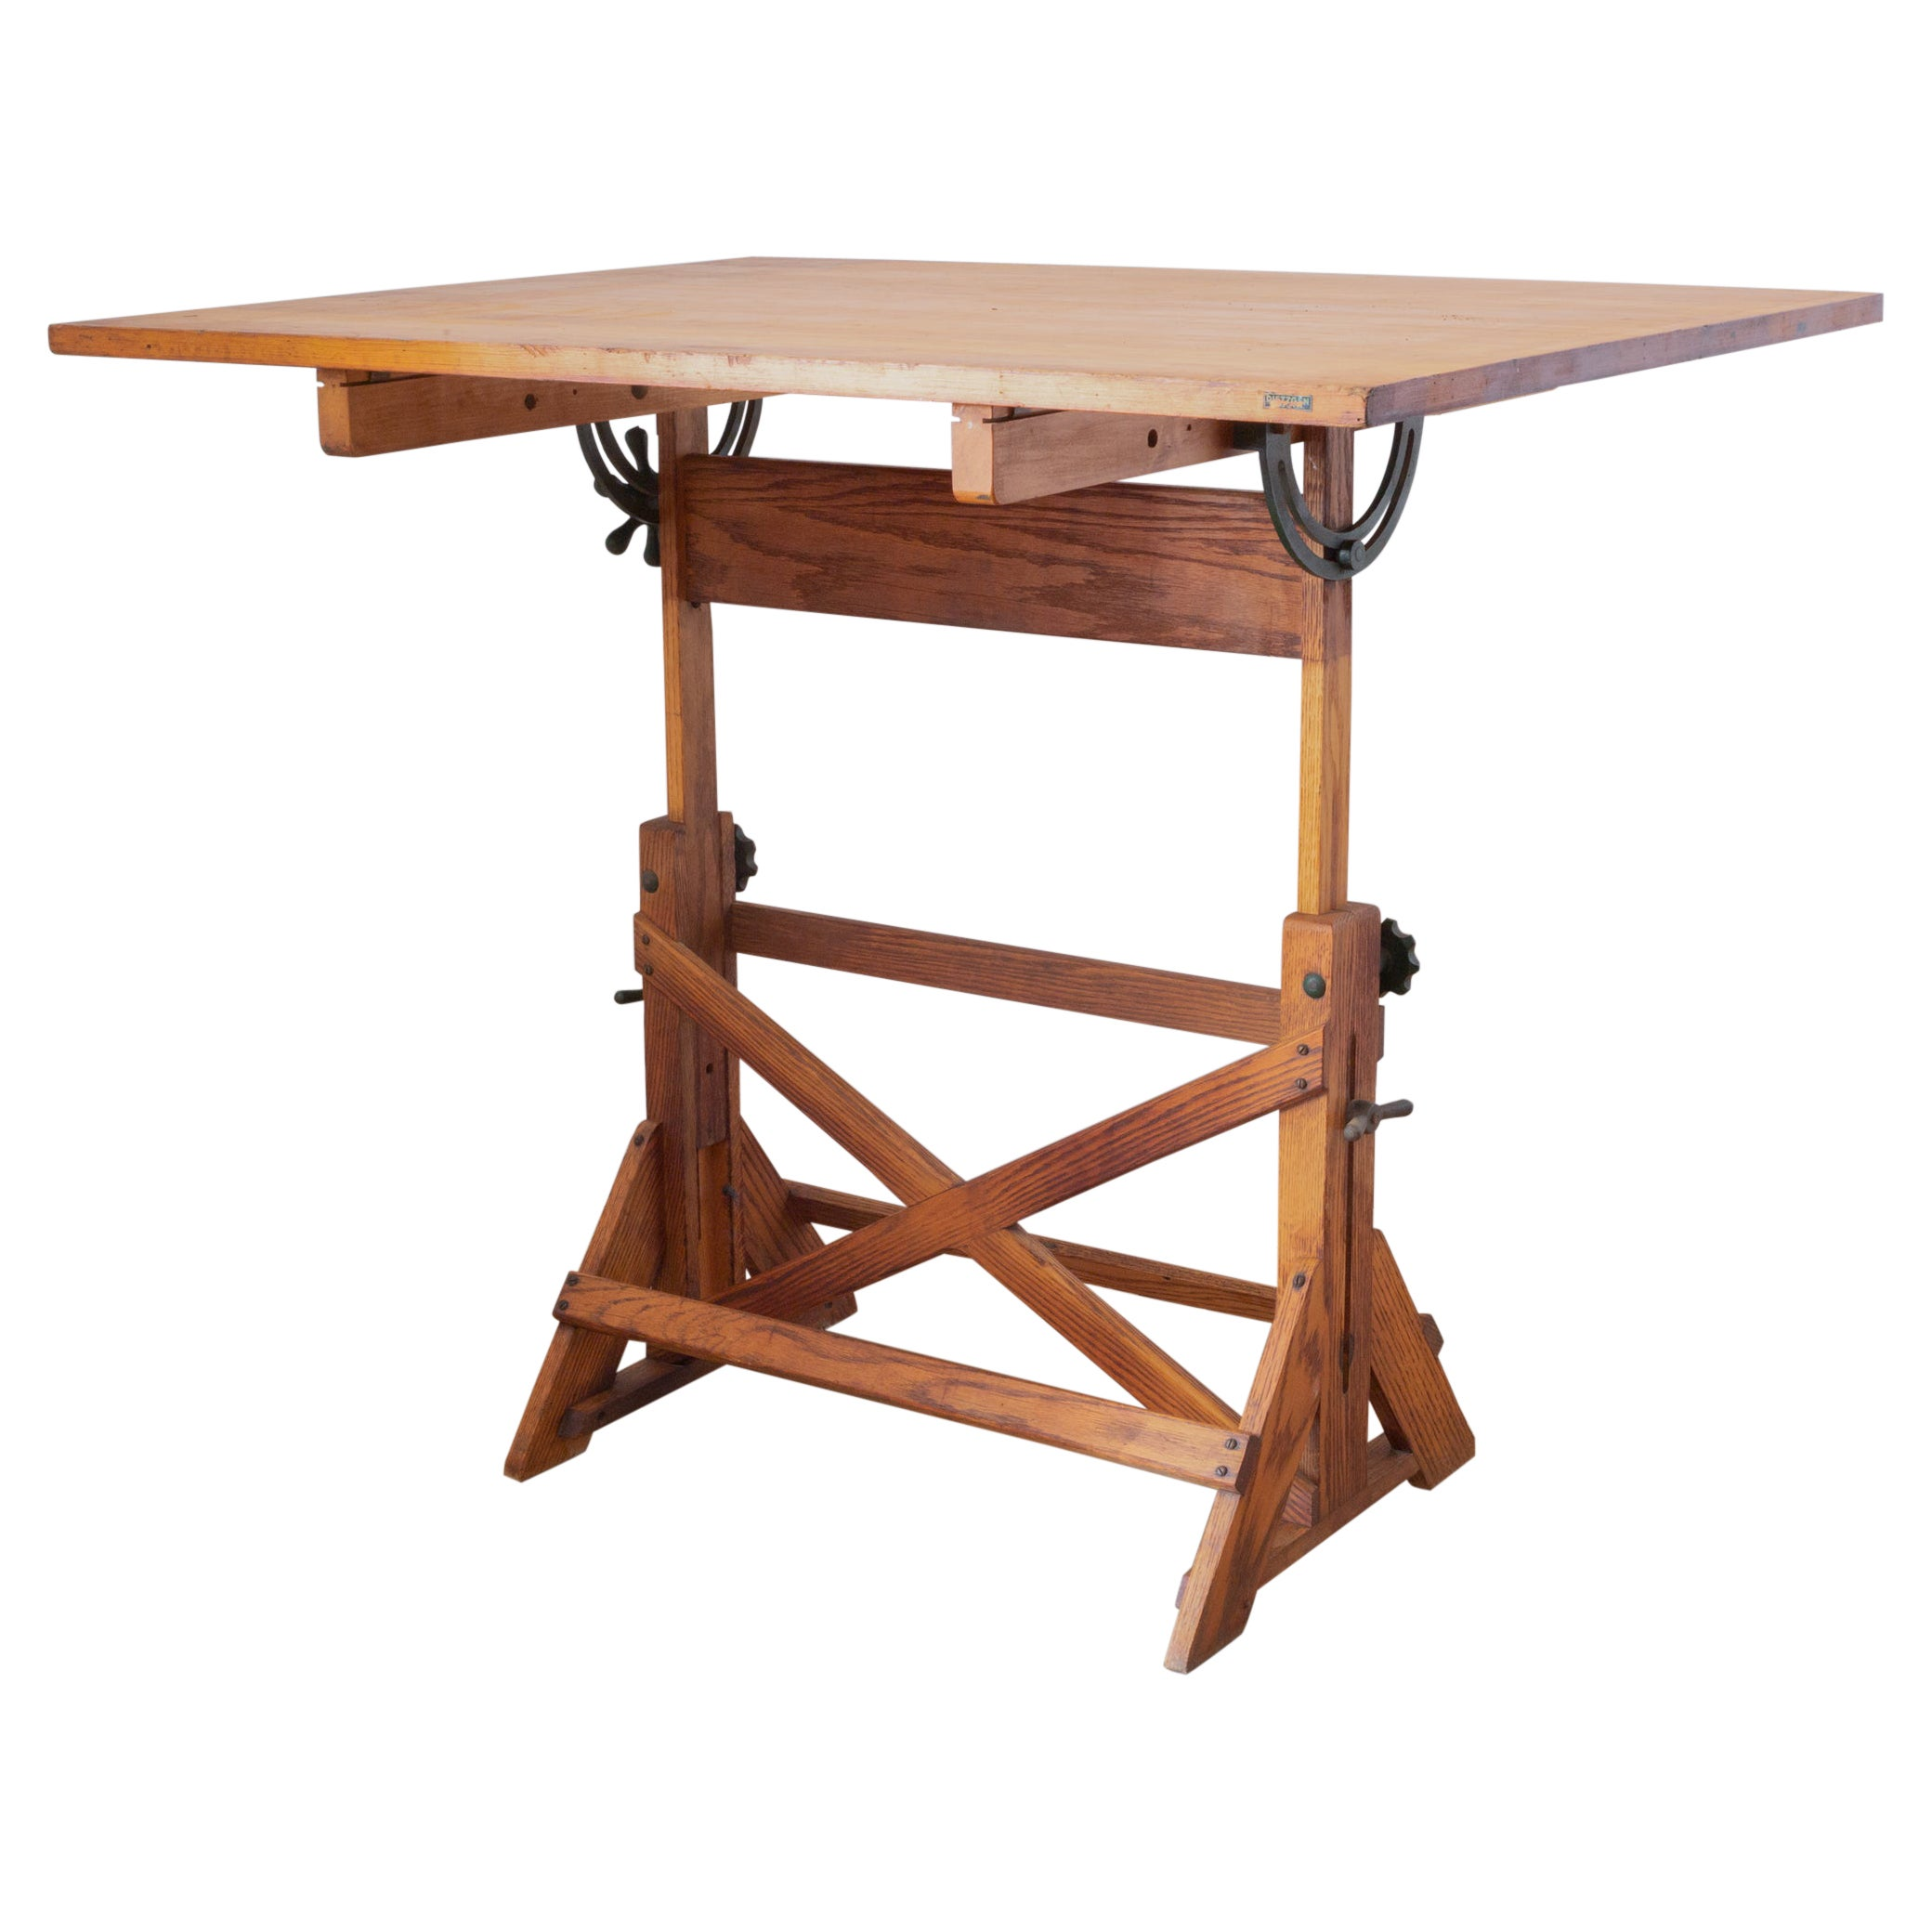 Antique Wood and Cast Iron Drafting Table c.1930